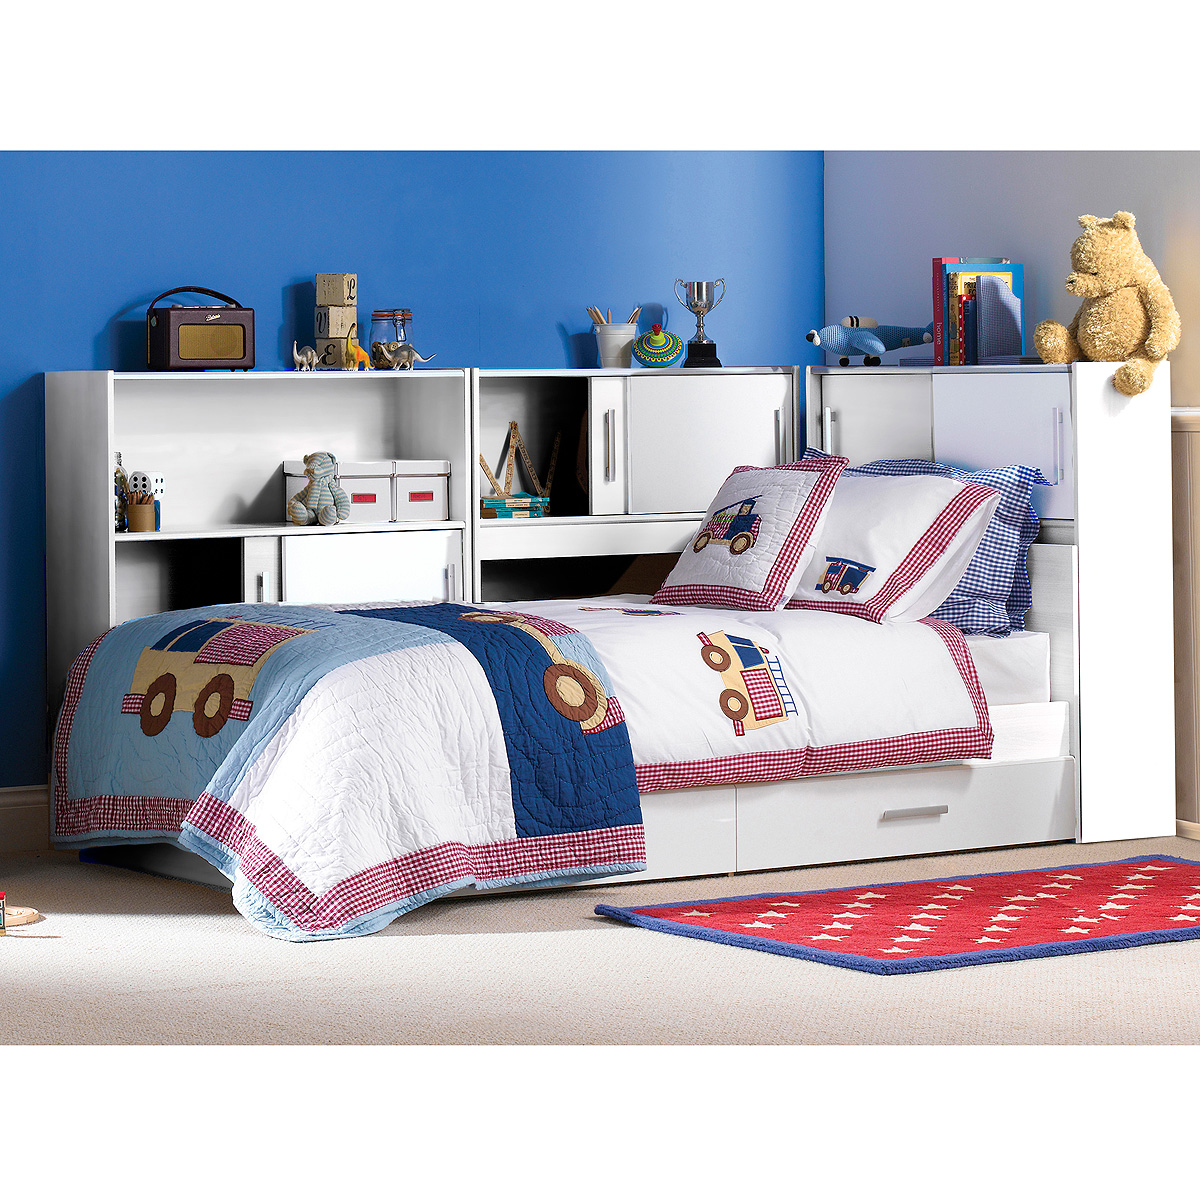 jugendbett snoop stauraumbett bett kinderbett in wei 90x200 eur 259 05 picclick de. Black Bedroom Furniture Sets. Home Design Ideas